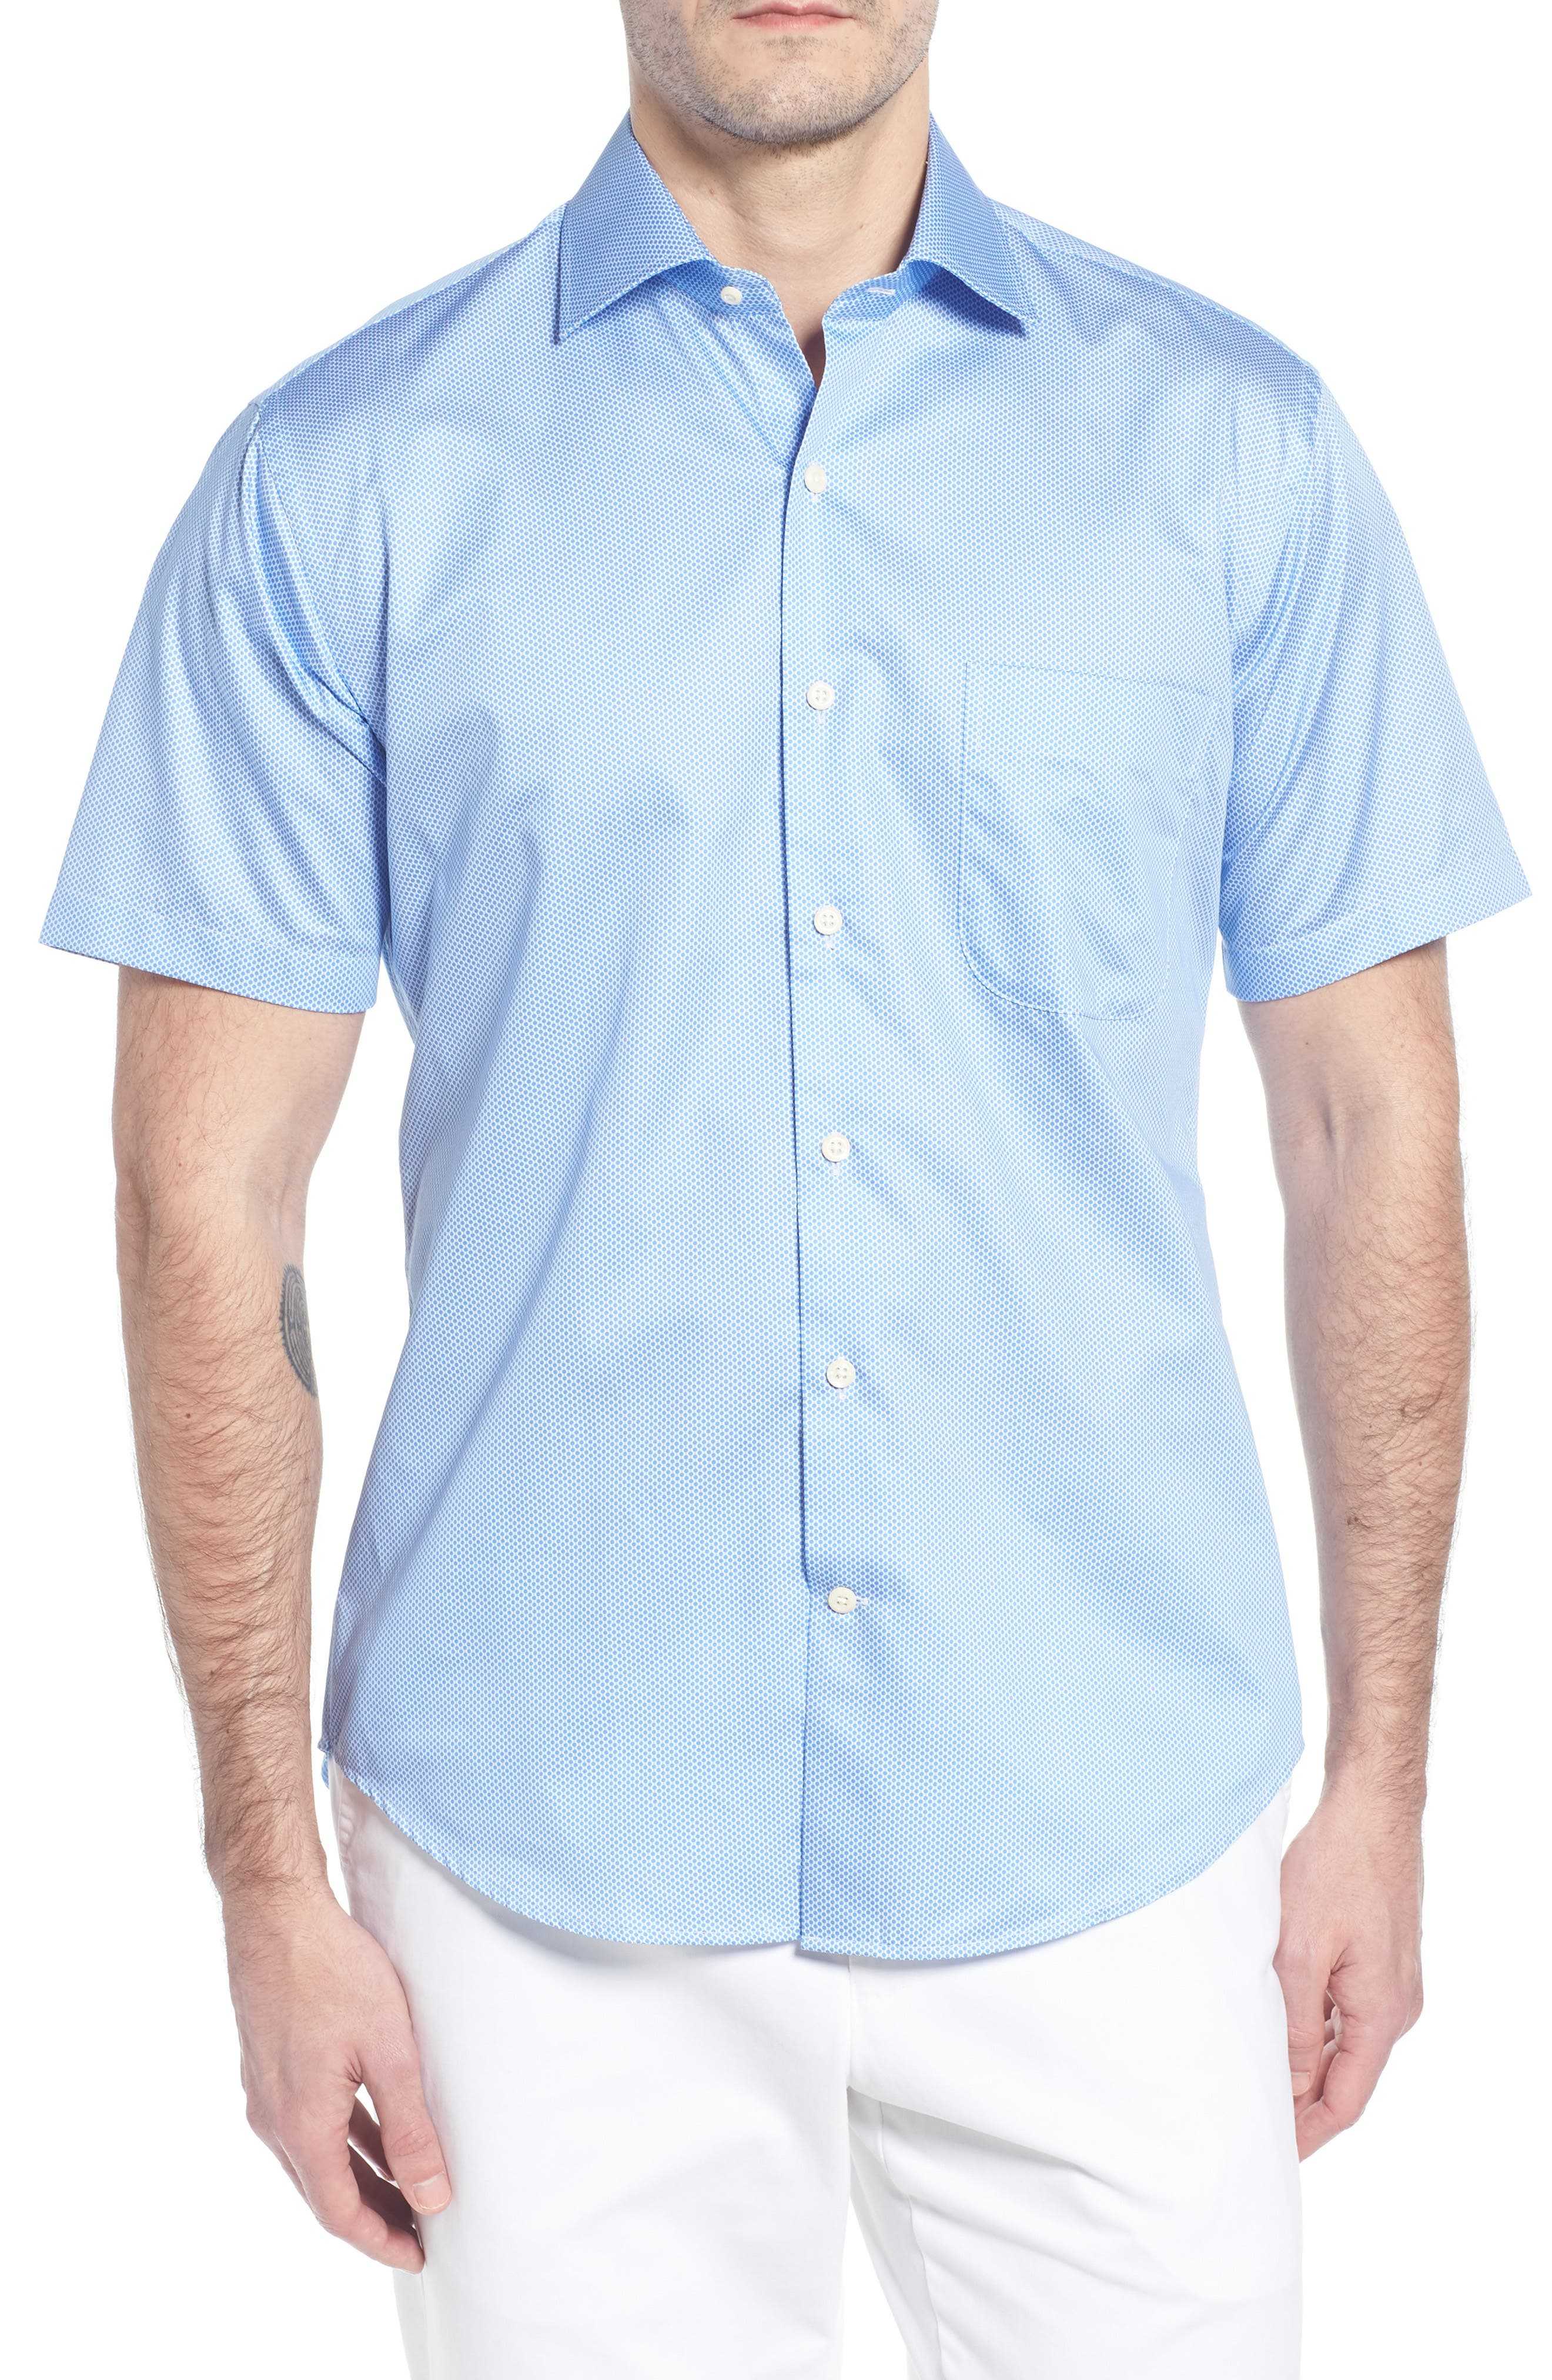 Crown Ease Connecting the Dots Sport Shirt,                         Main,                         color, ATLAS BLUE